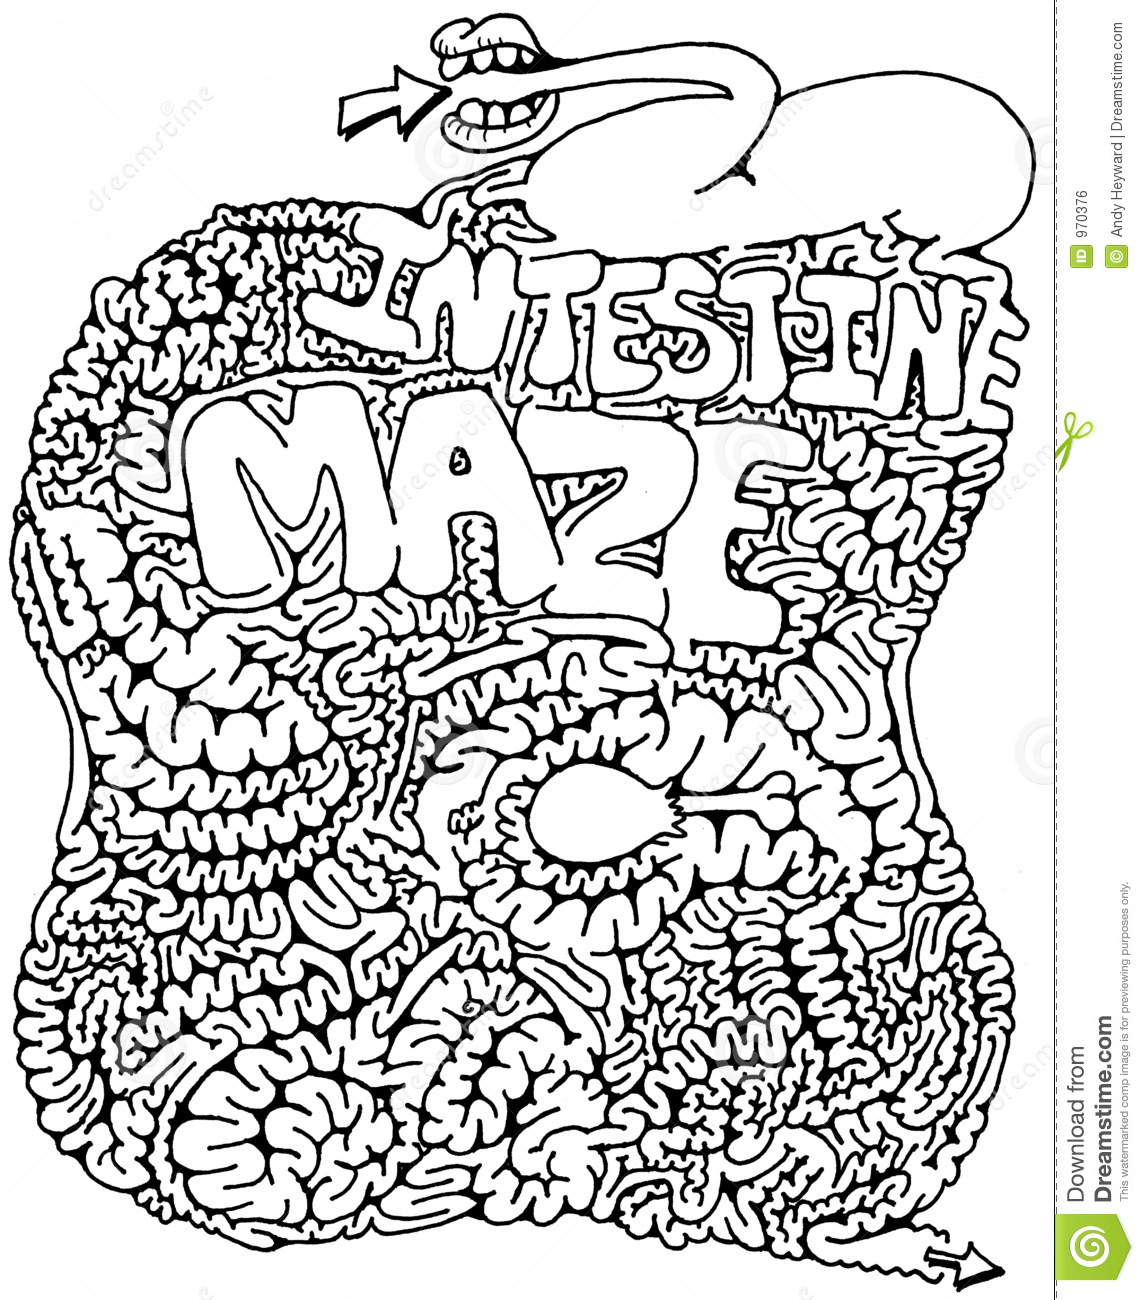 Intestine Maze Royalty Free Stock Image